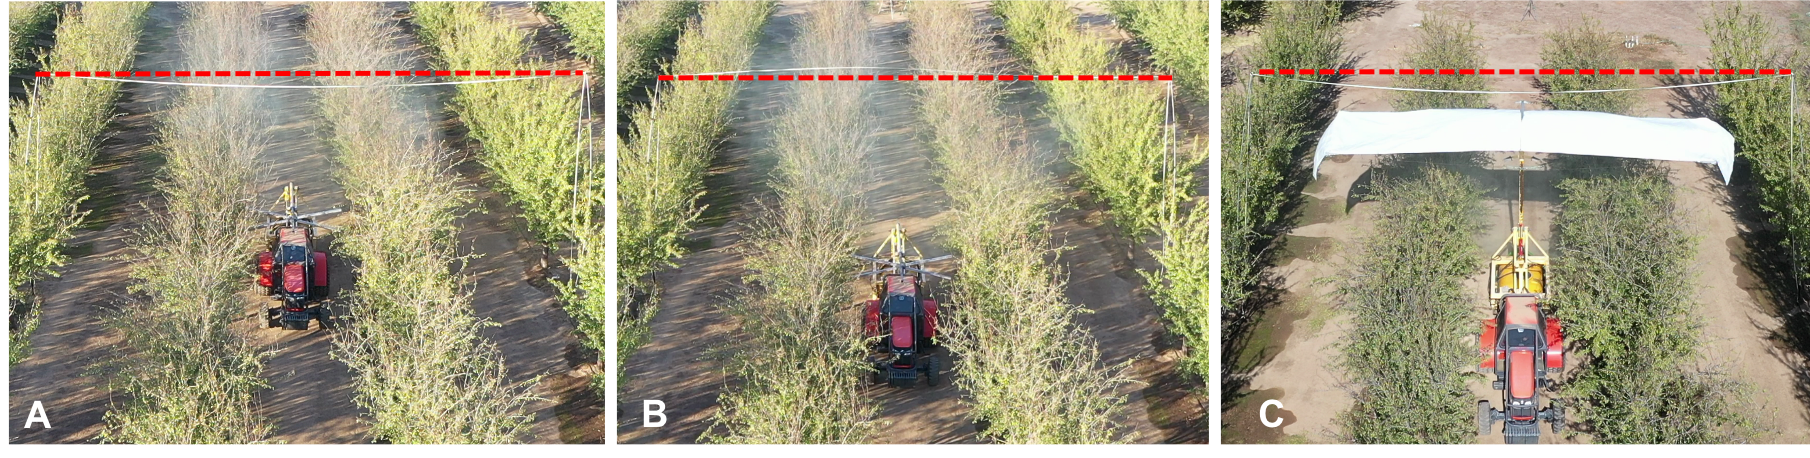 UC Davis Digital Agriculture Lab Photo - Aerial images captured from DJI Mavic drone. (A) it demonstrates the rest position of the ribbon, (B) it shows how cloud of droplets could lift the ribbon, mostly the left side, (C) it shows the backstop system could capture the cloud and therefore the ribbon remained in its rest position.